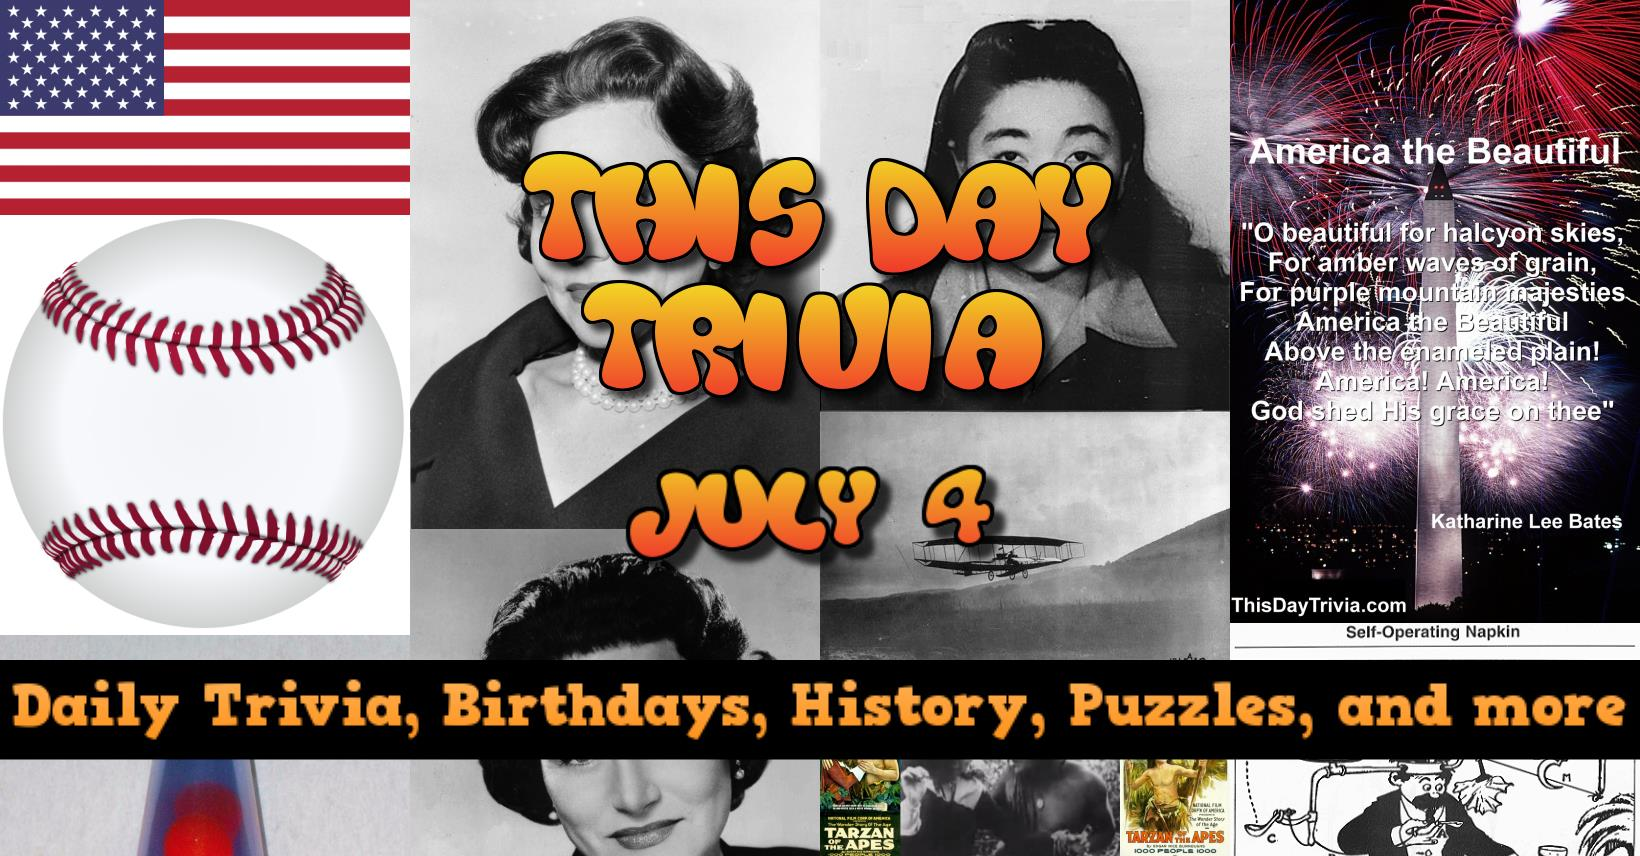 Today S Trivia July 4